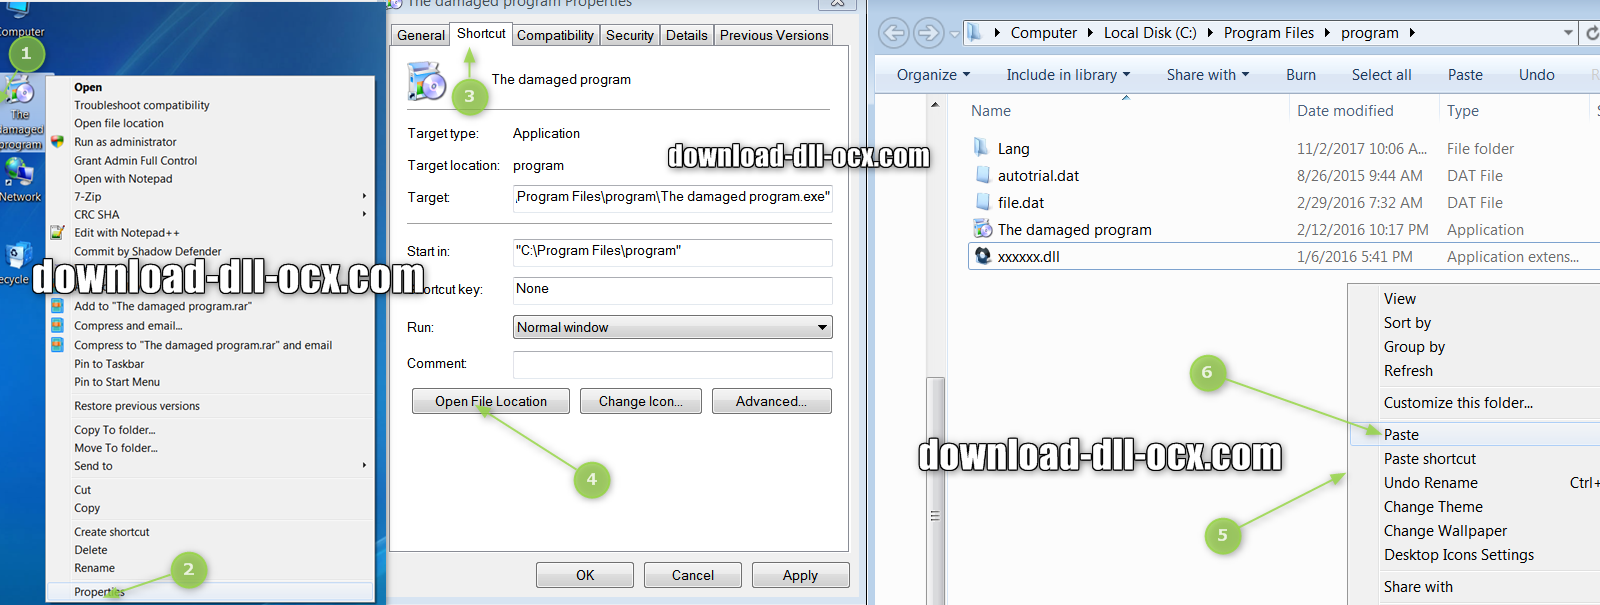 how to install Jobqmgr.dll file? for fix missing